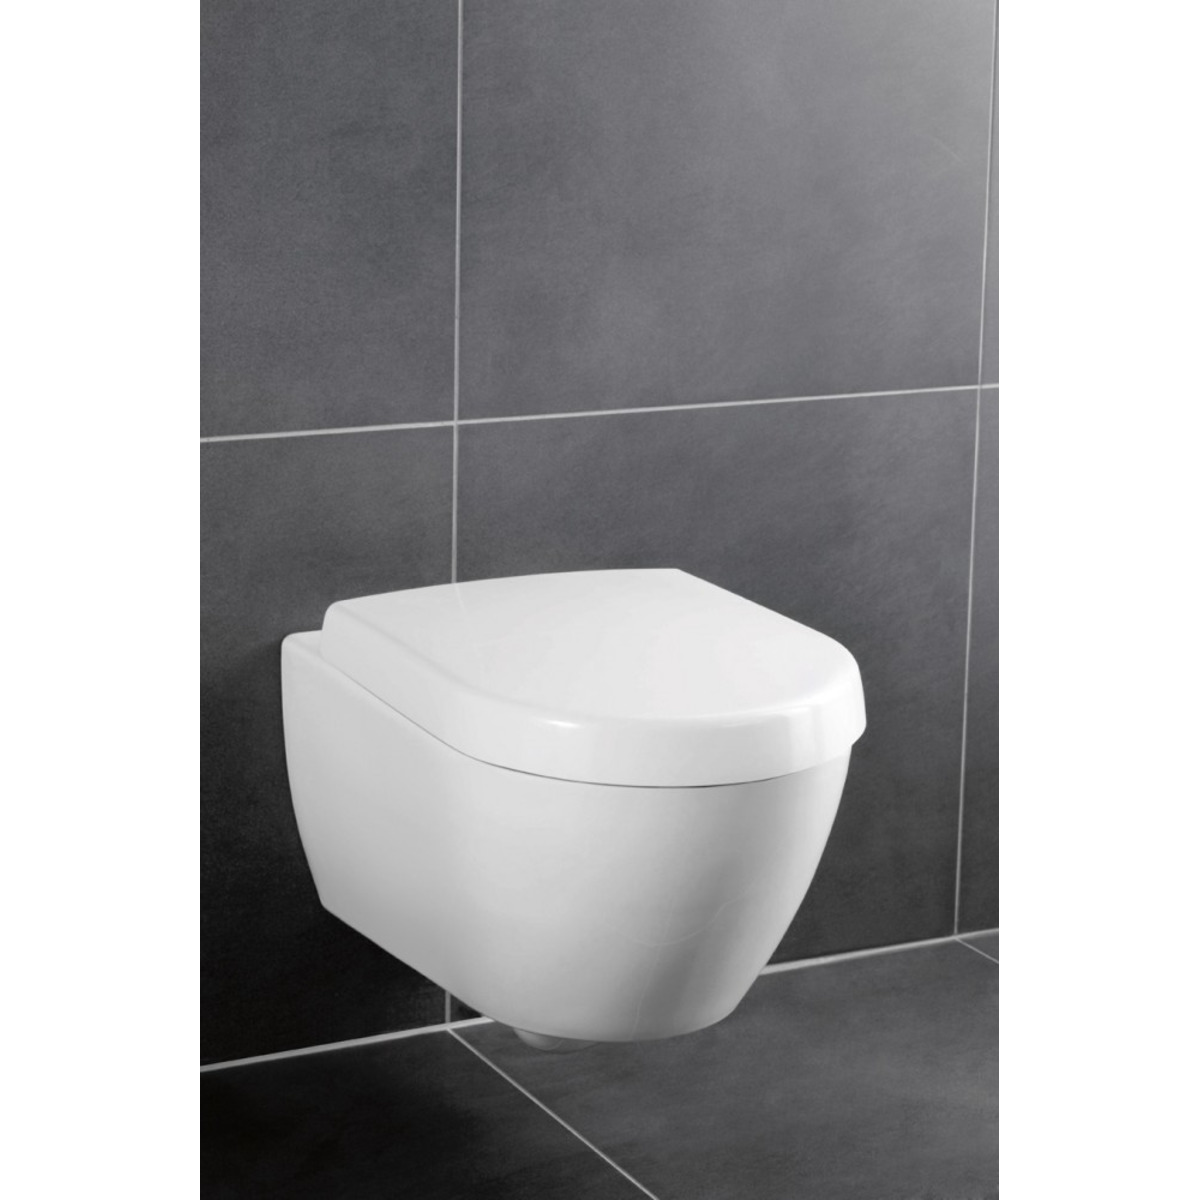 villeroy en boch subway 2 0 compact met softclose zitting toiletset met geberit inbouwreservoir. Black Bedroom Furniture Sets. Home Design Ideas